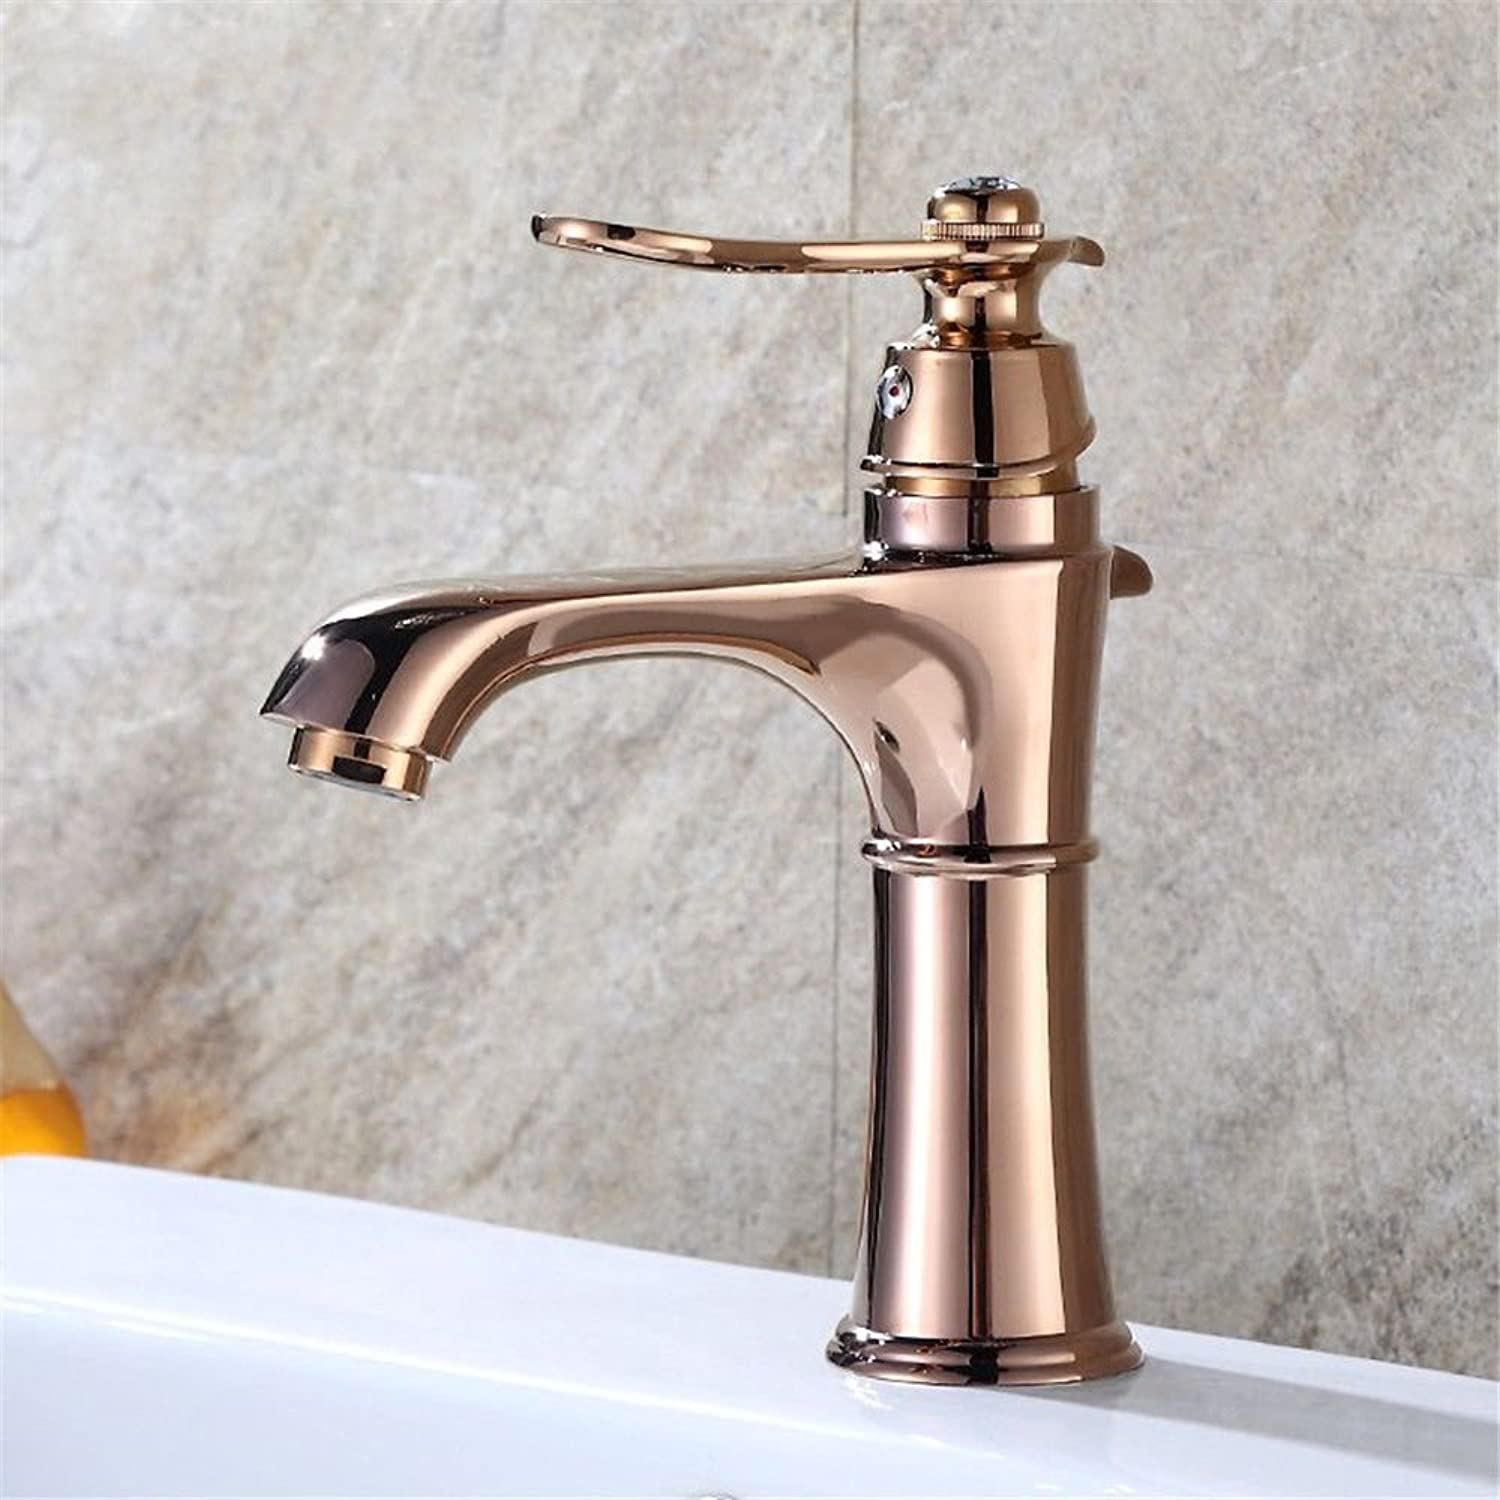 Lpophy Bathroom Sink Mixer Taps Faucet Bath Waterfall Cold and Hot Water Tap for Washroom Bathroom and Kitchen Hot and Cold Champagne gold